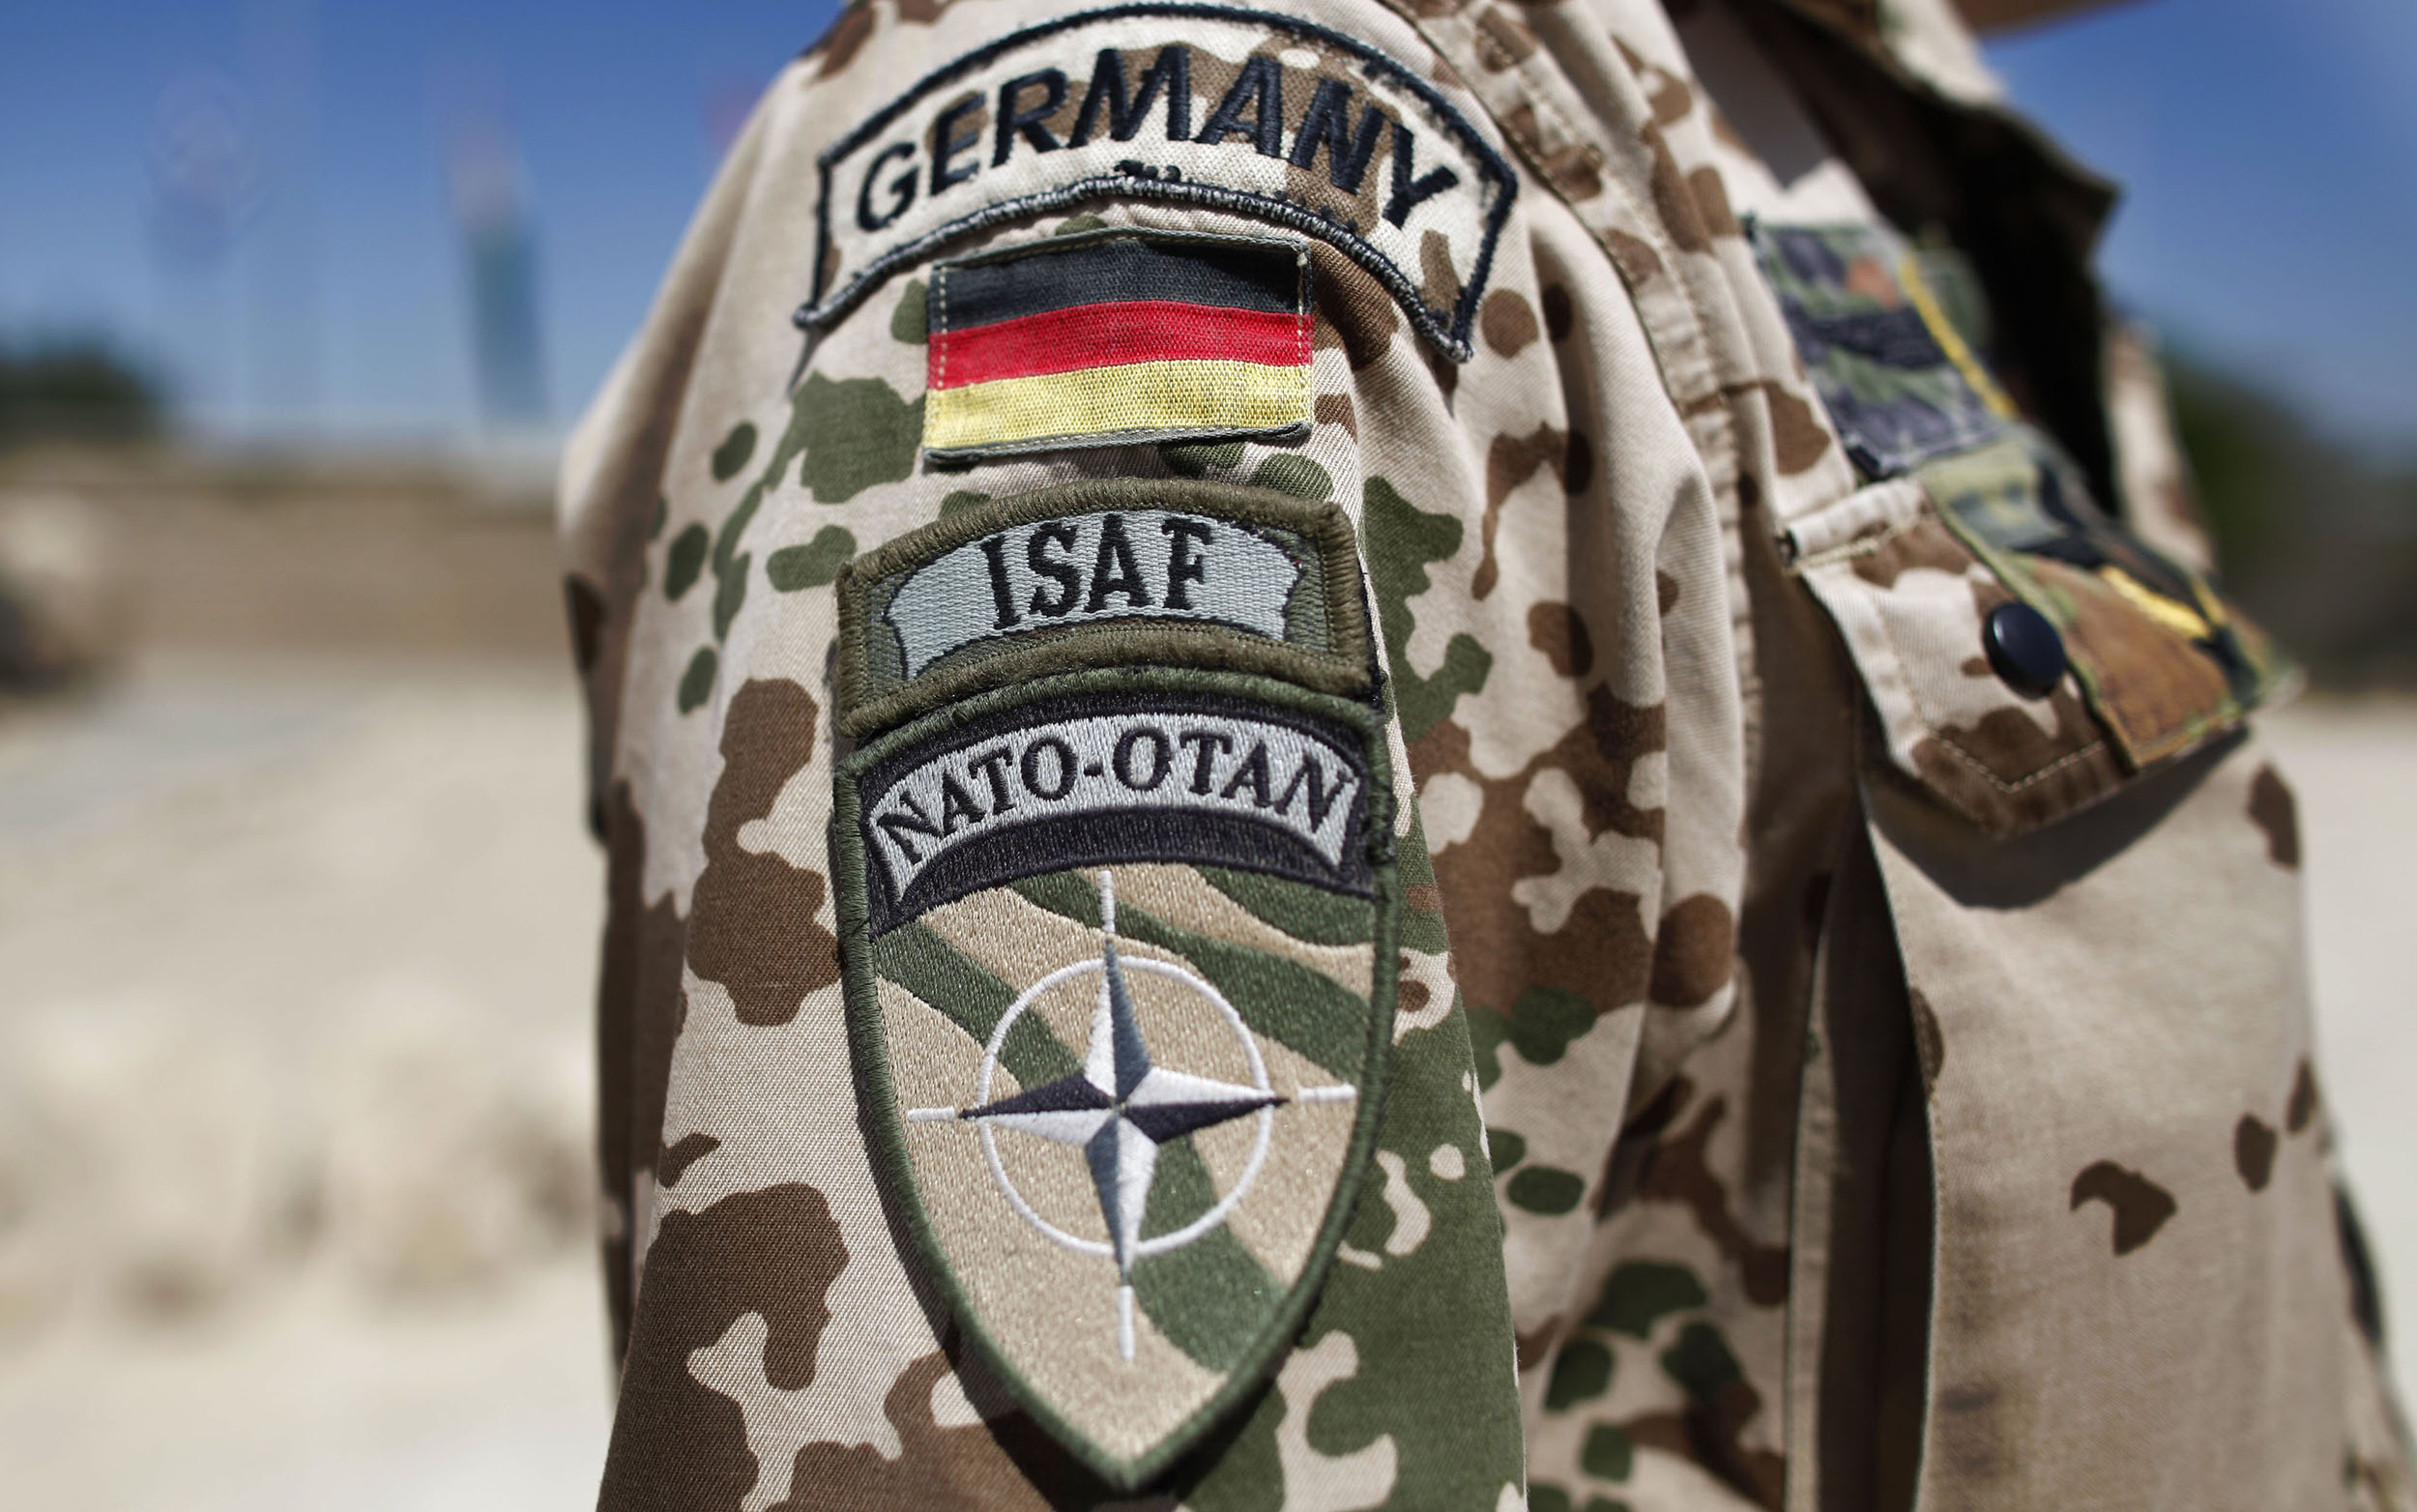 Badges-of-Germany-ISAF-International-Security-Assistance-Force-and-NATO-are-seen-on-the-sleeve-of-th